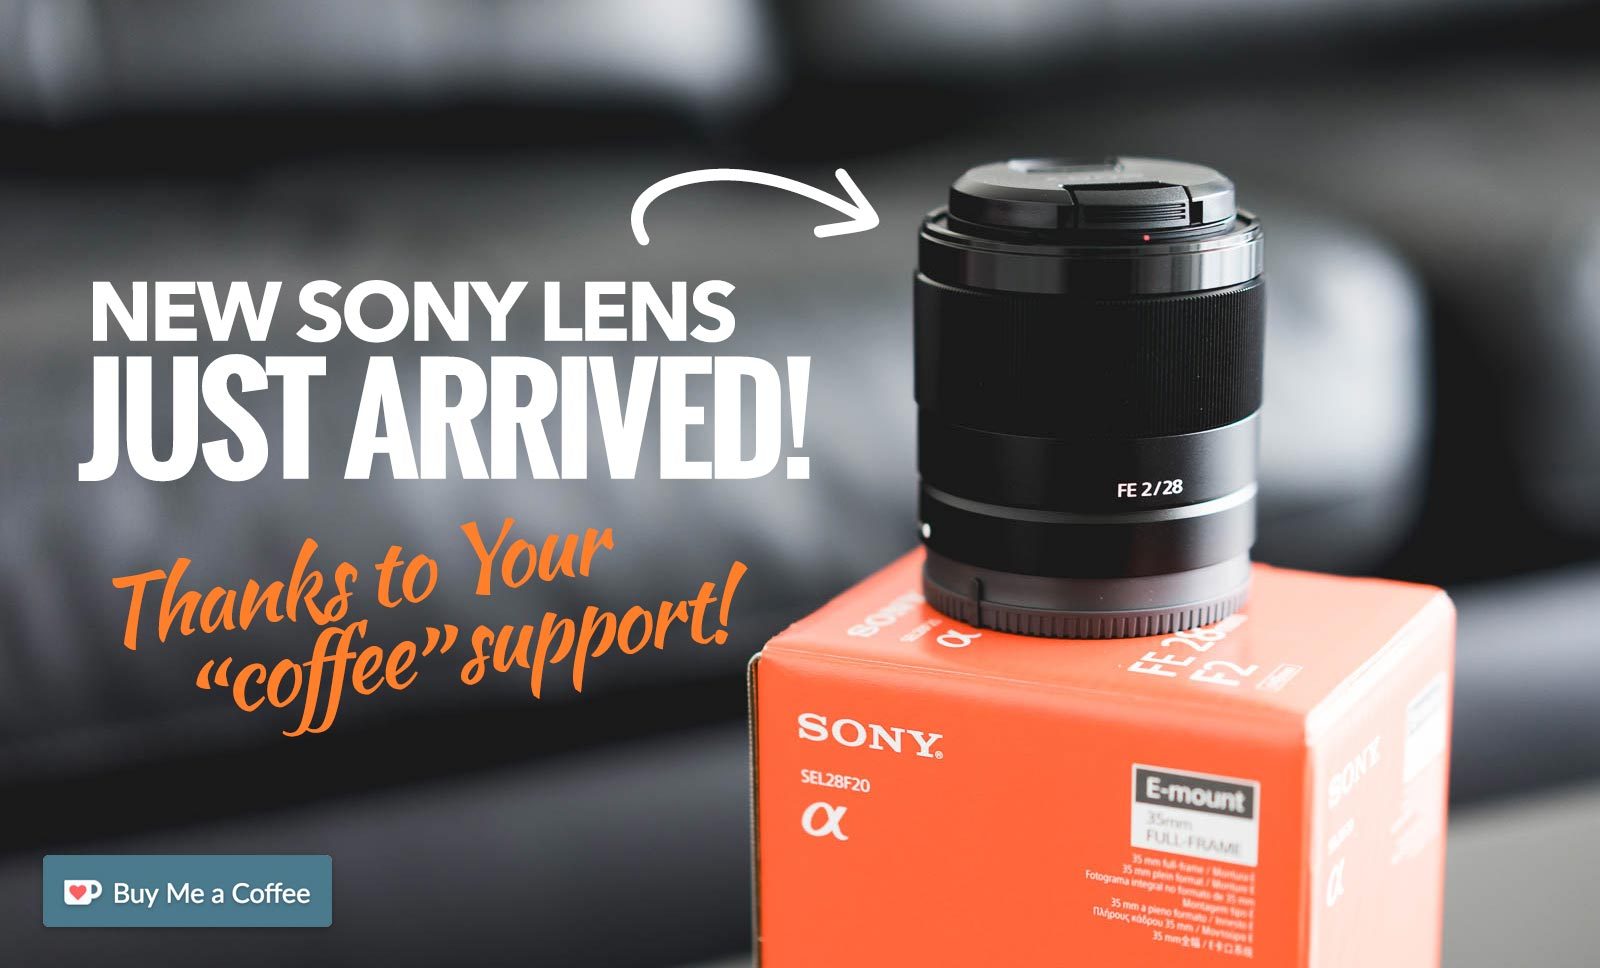 The new Sony lens just arrived — thanks to You! — picjumbo BLOG